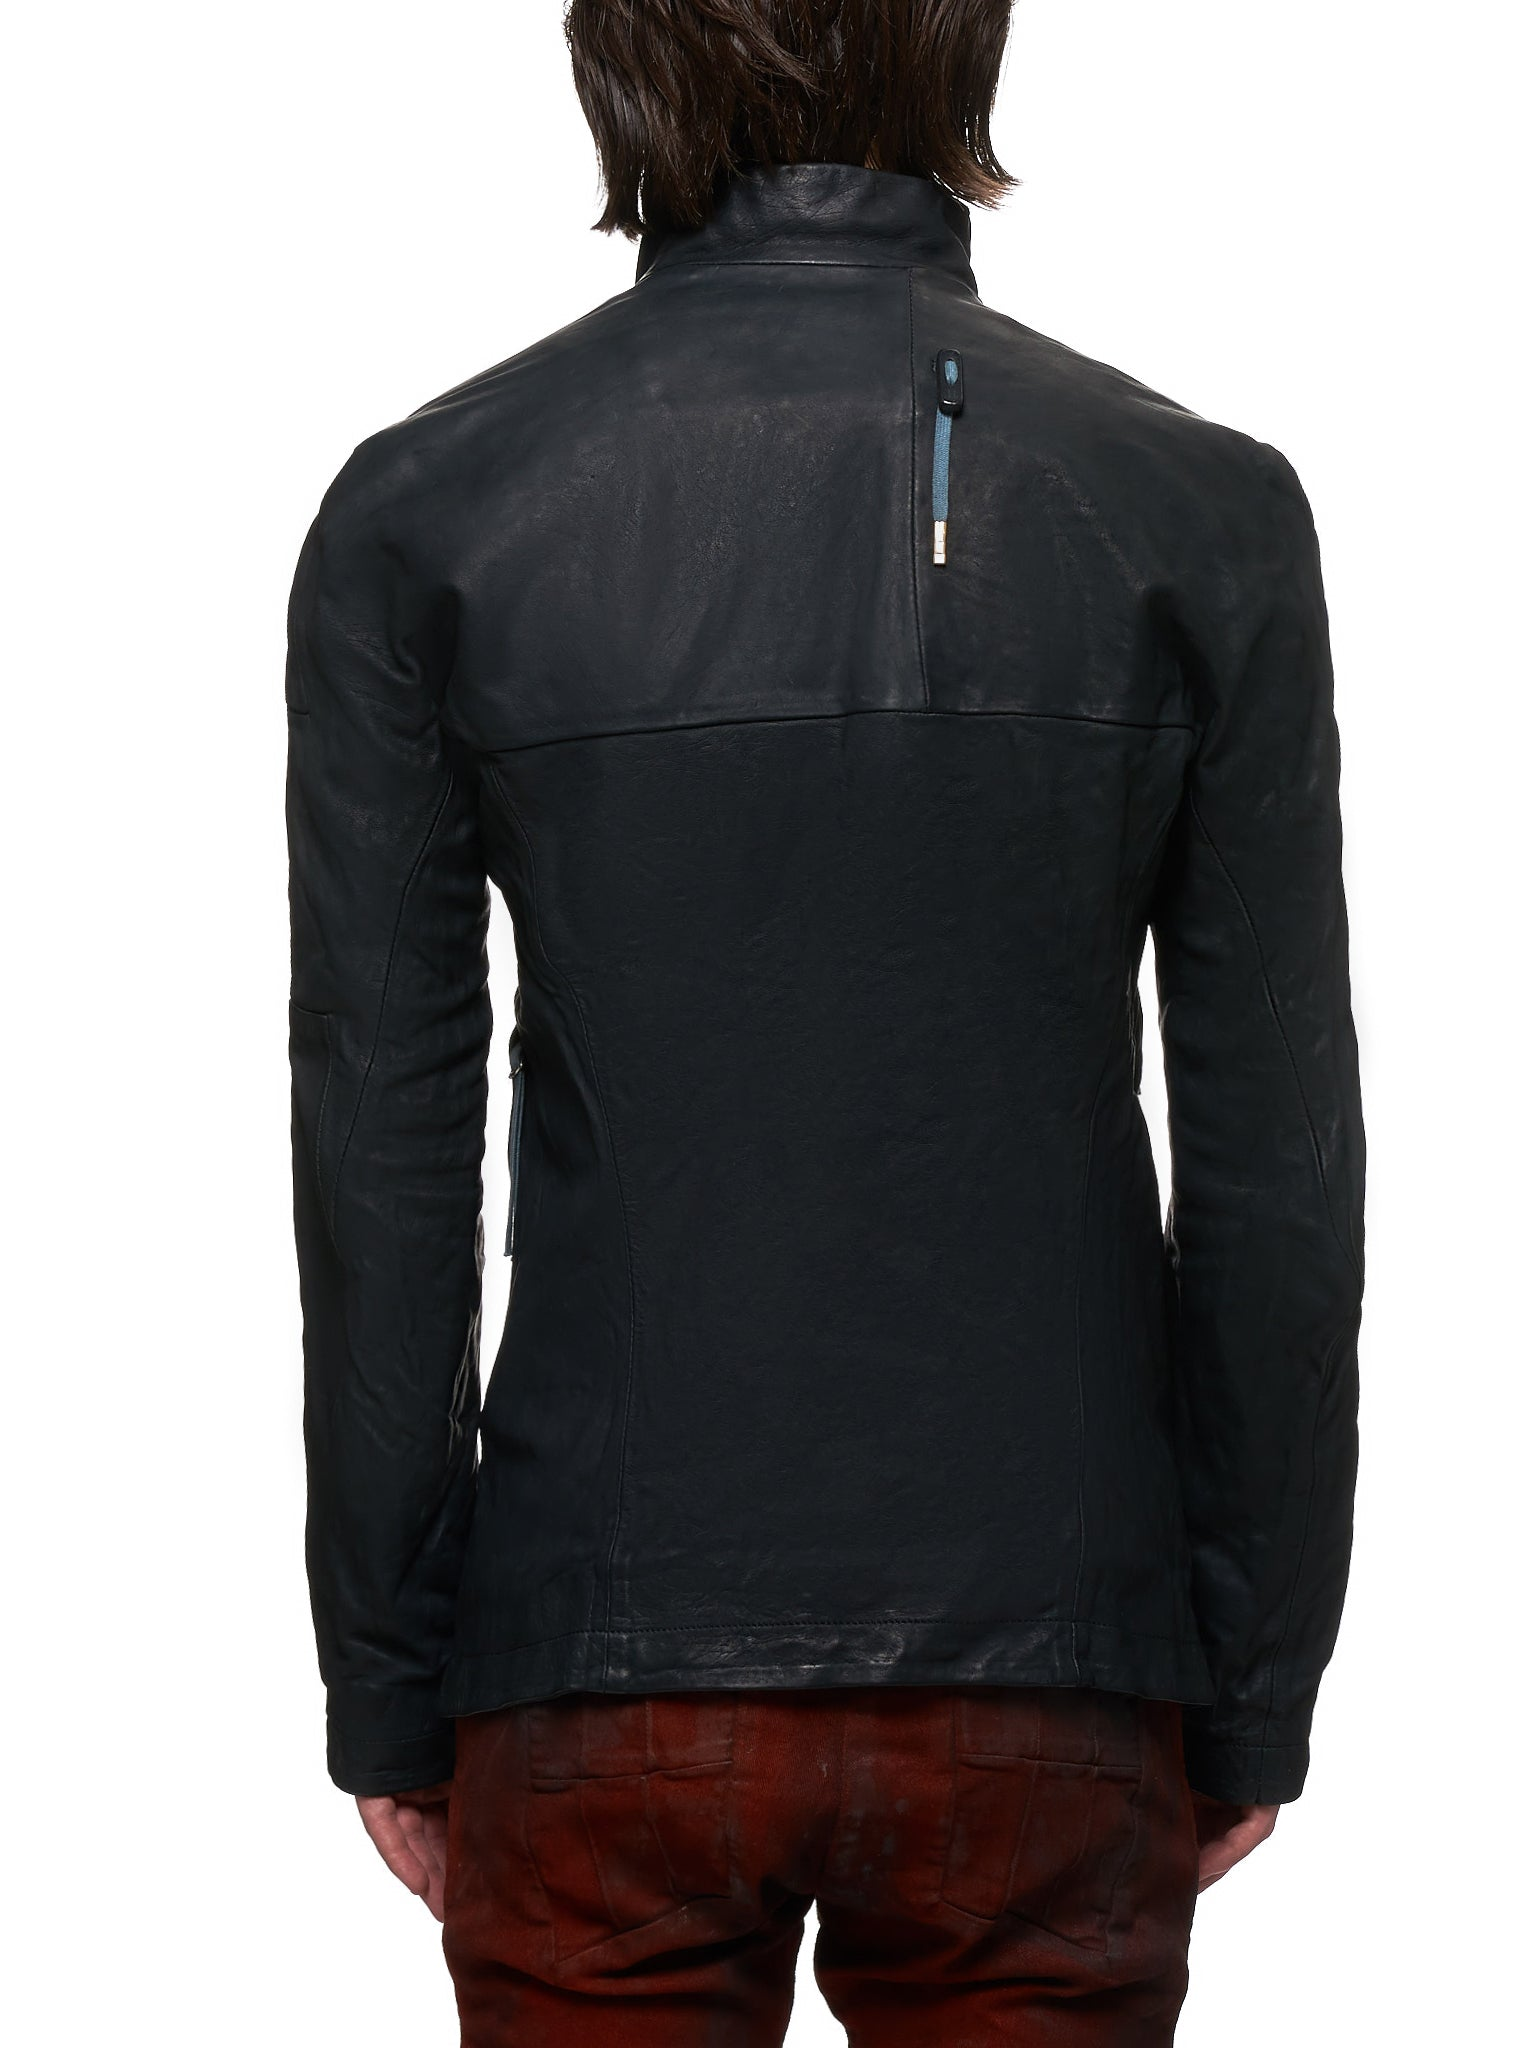 Boris Bidjan Saberi Leather J5 Jacket - Hlorenzo Back